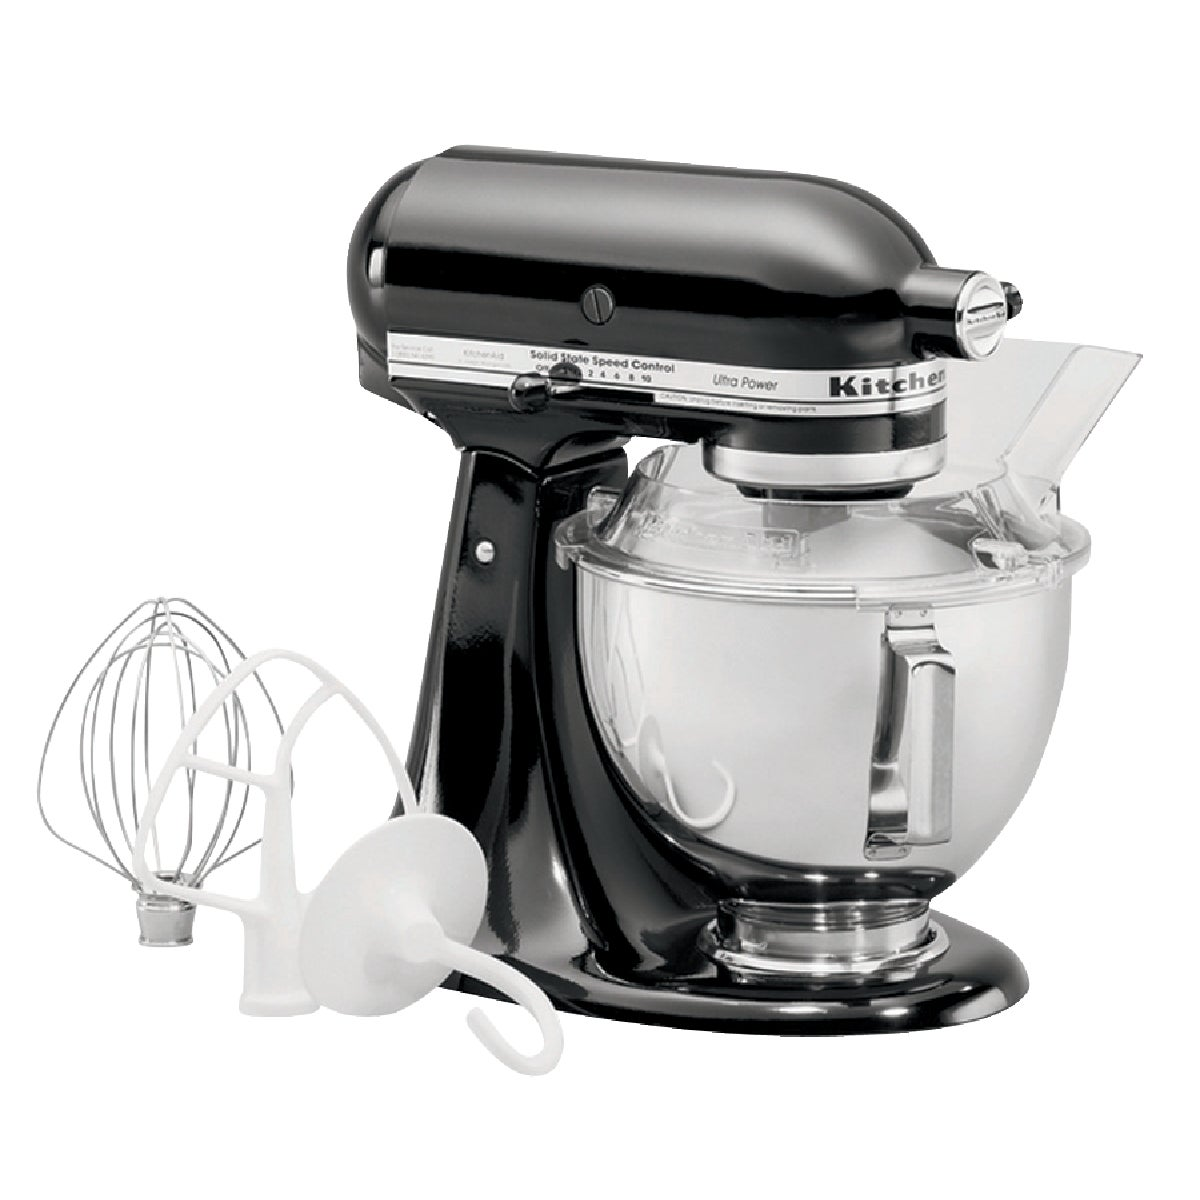 BLK ARTISAN STAND MIXER - KSM150PSOB by Kitchenaid Inc